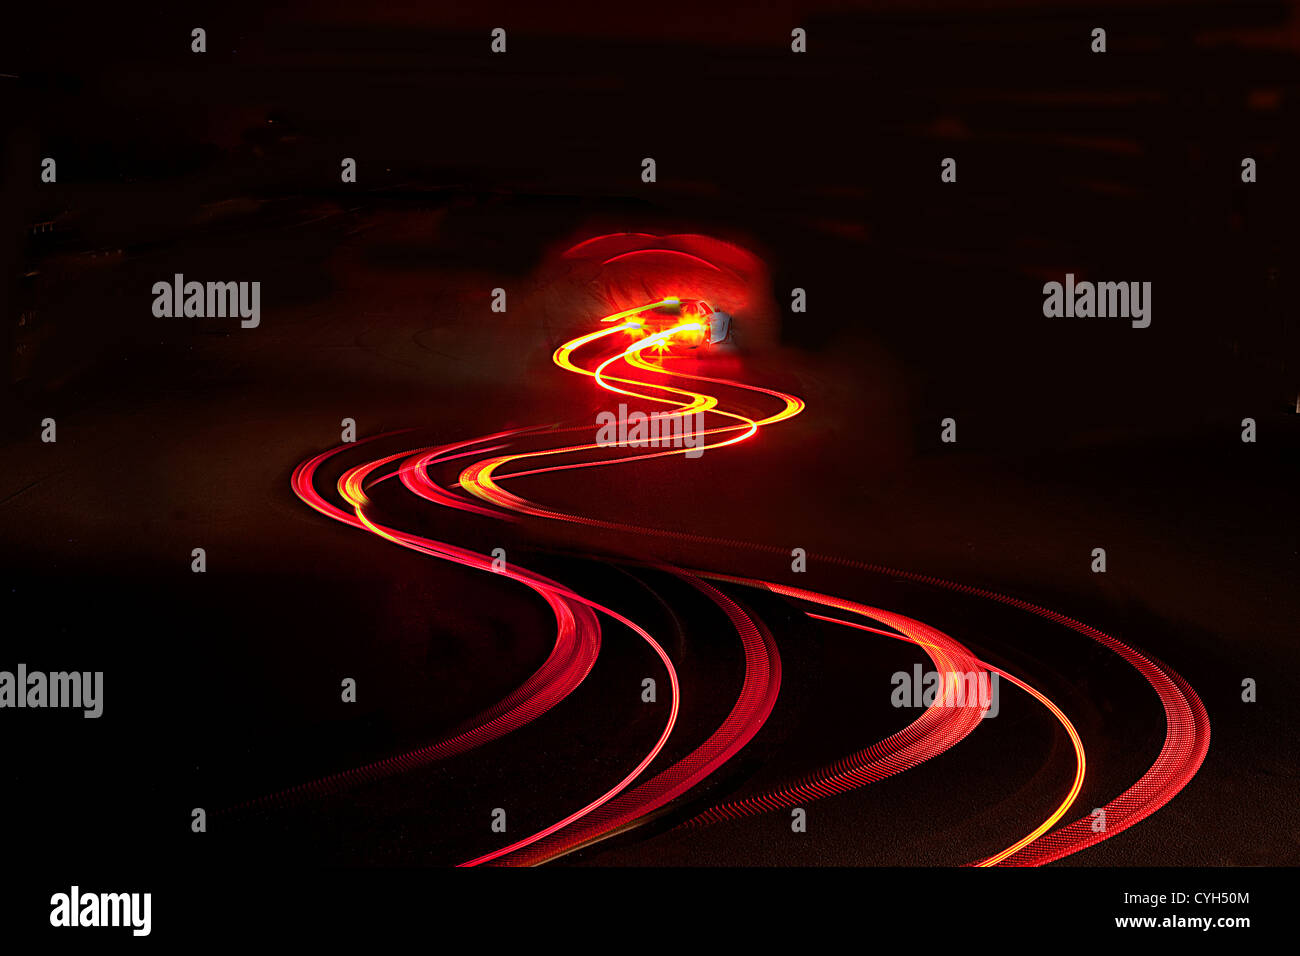 Car rear light trail on a country road at night. - Stock Image